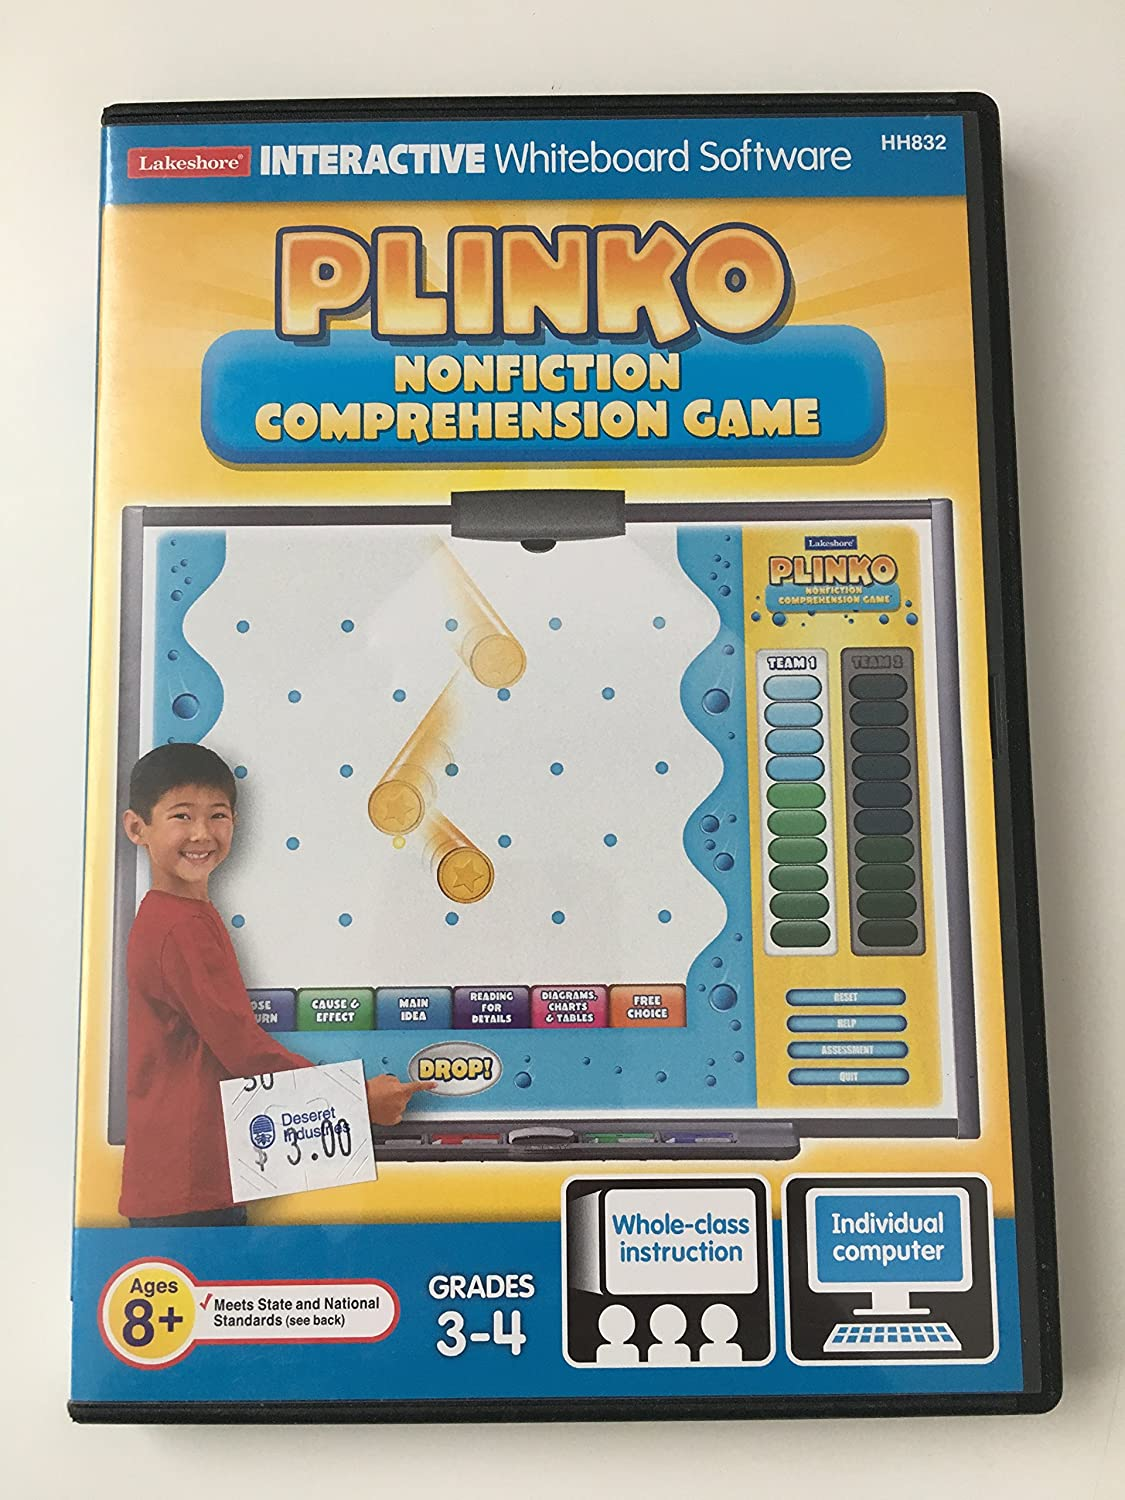 - Amazon.com: Plinko/ Non-Fiction Comprehension Game/Grades 3-4